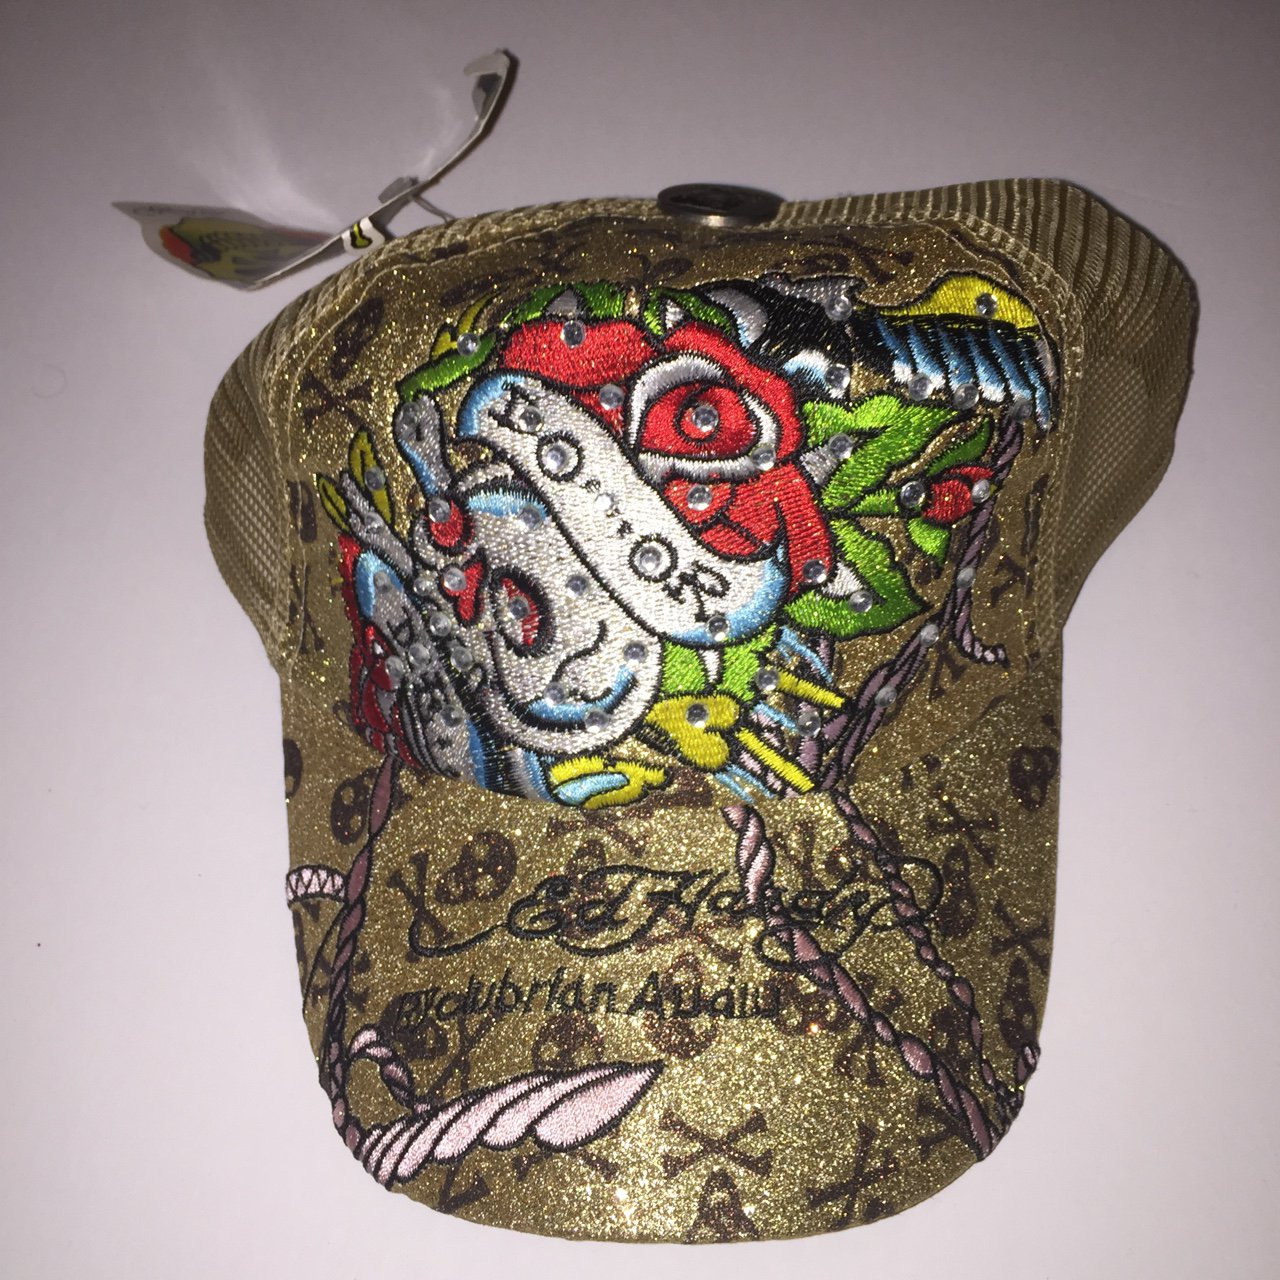 Ed hardy trucker hat. Gold Glitter with classic jeweled